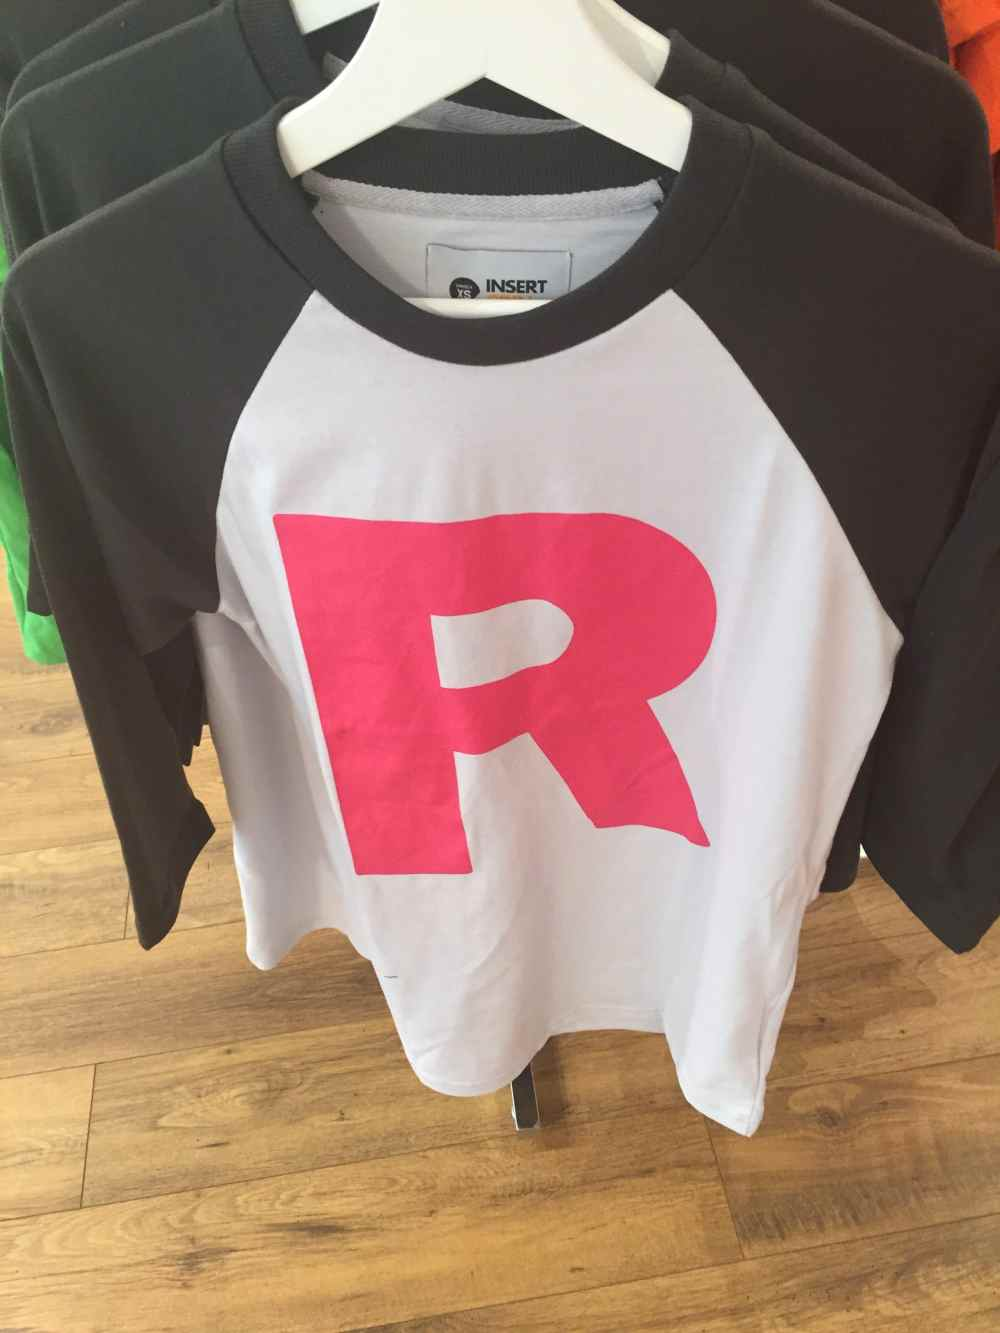 team-rocket-insert-coin-tshirt